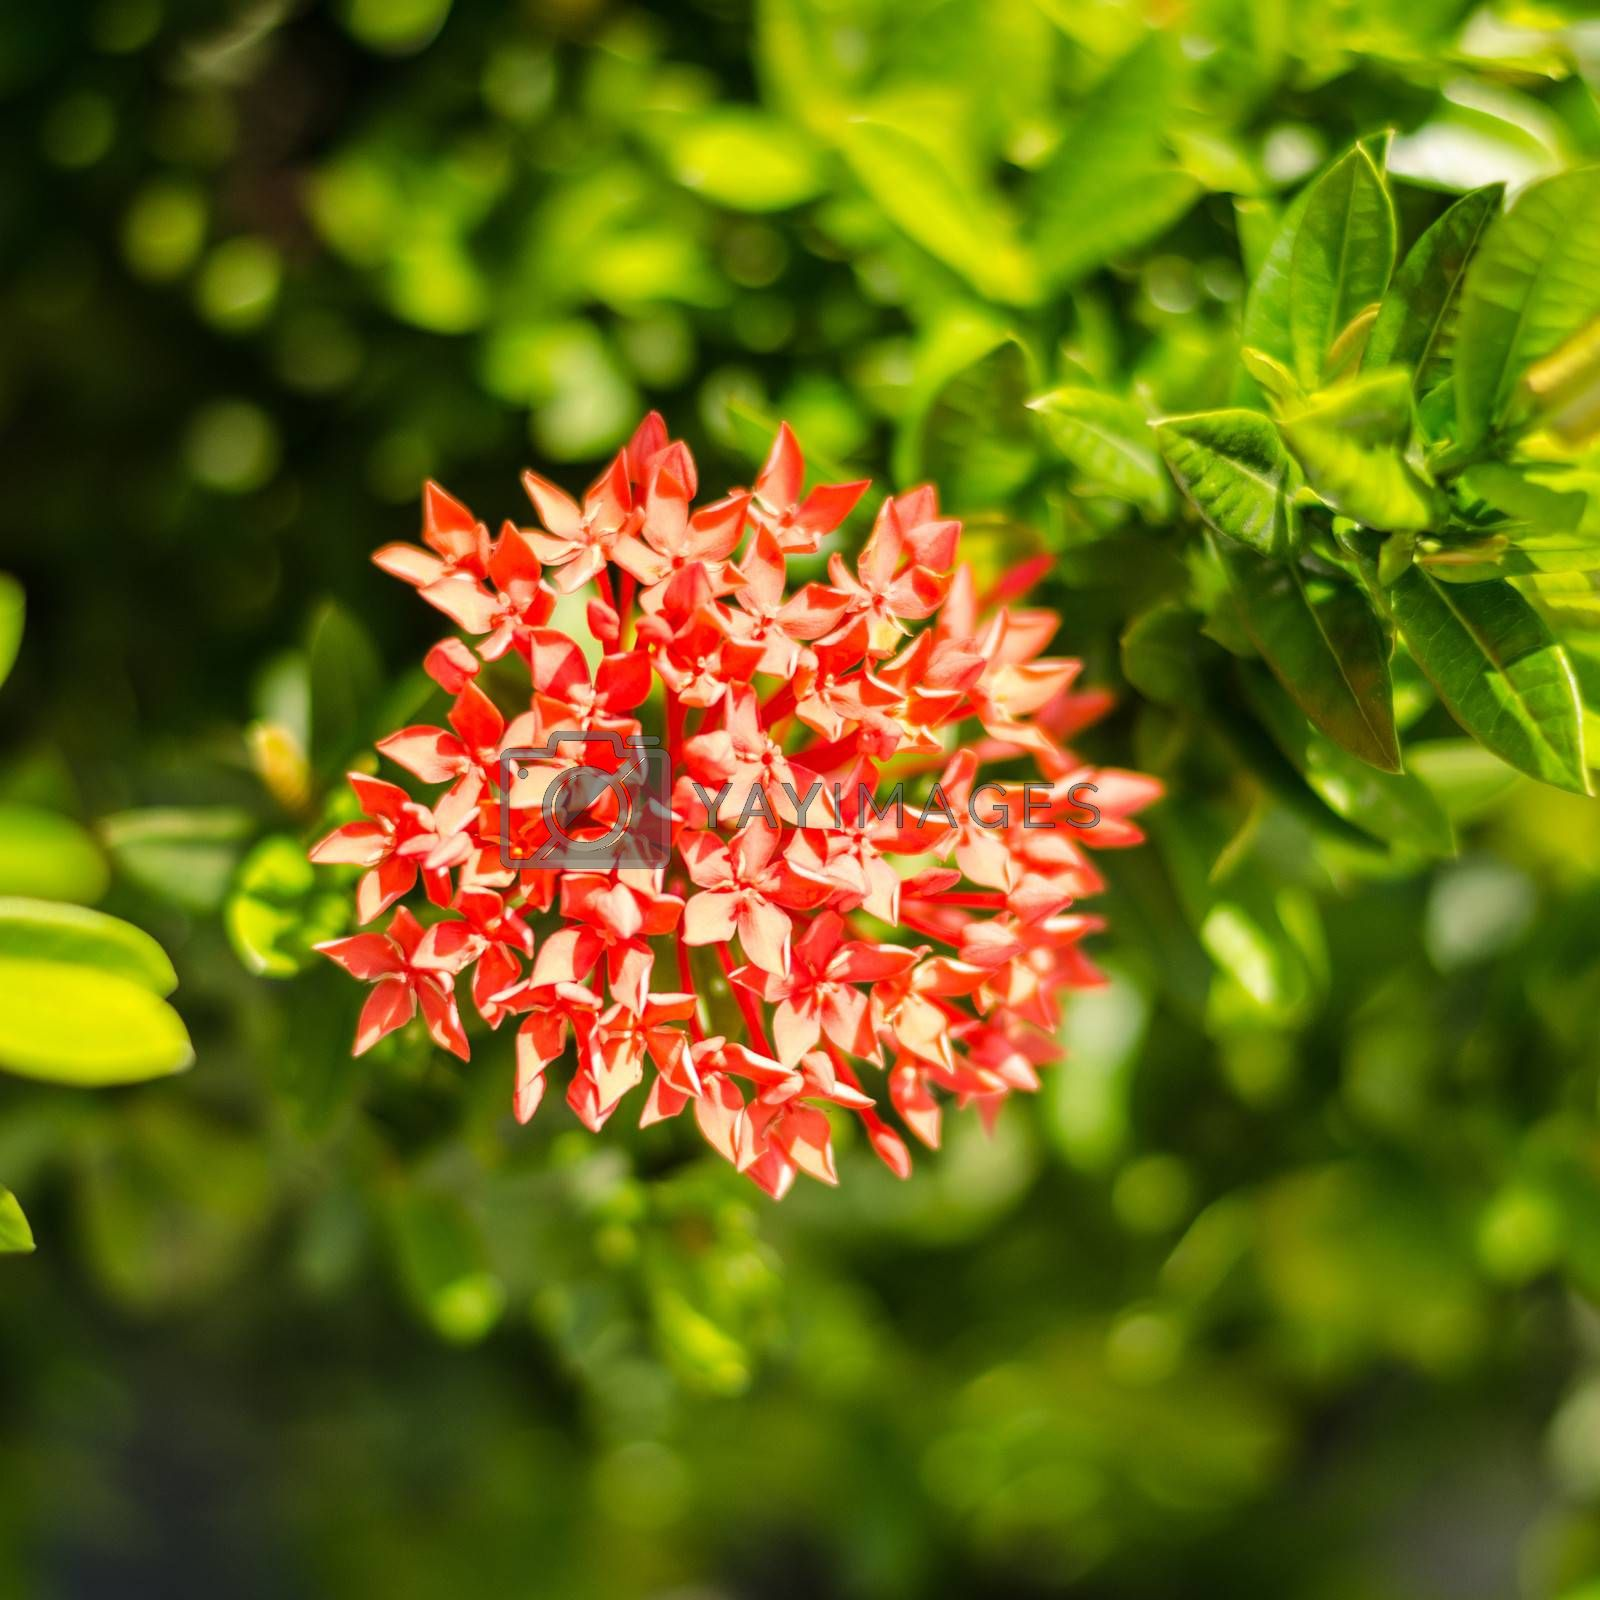 red Ixora flower on green leaves background